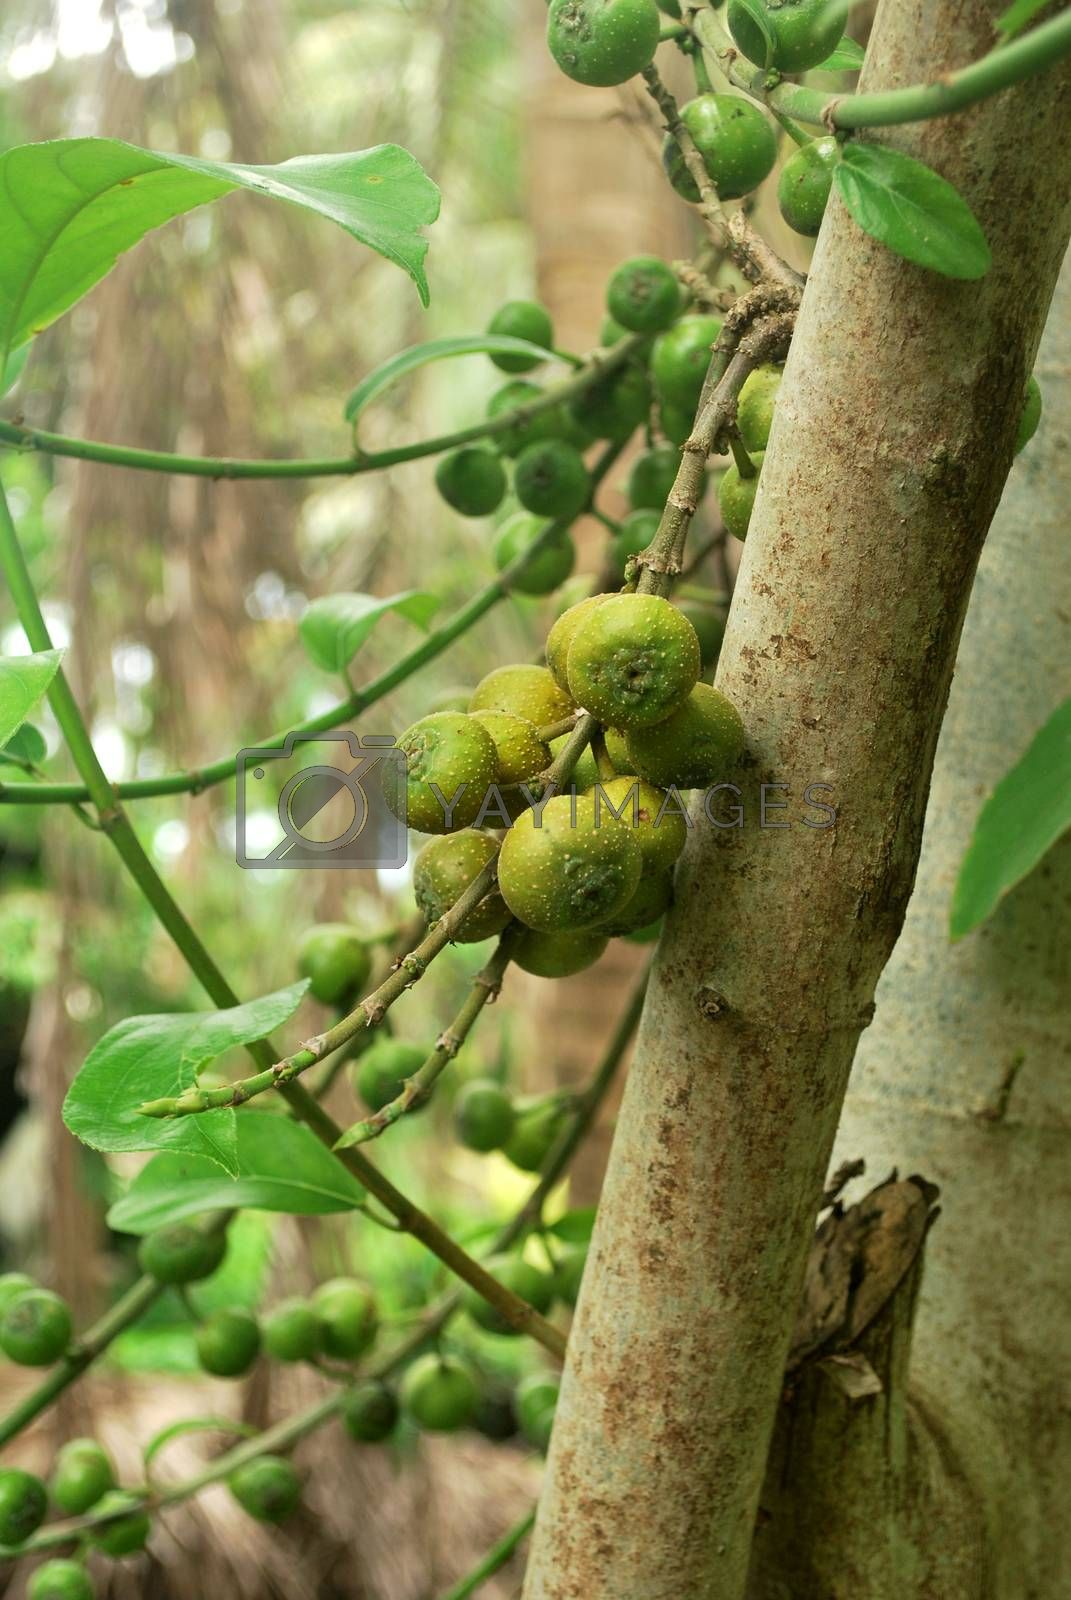 Is a medicinal plant of Thai wild figs.